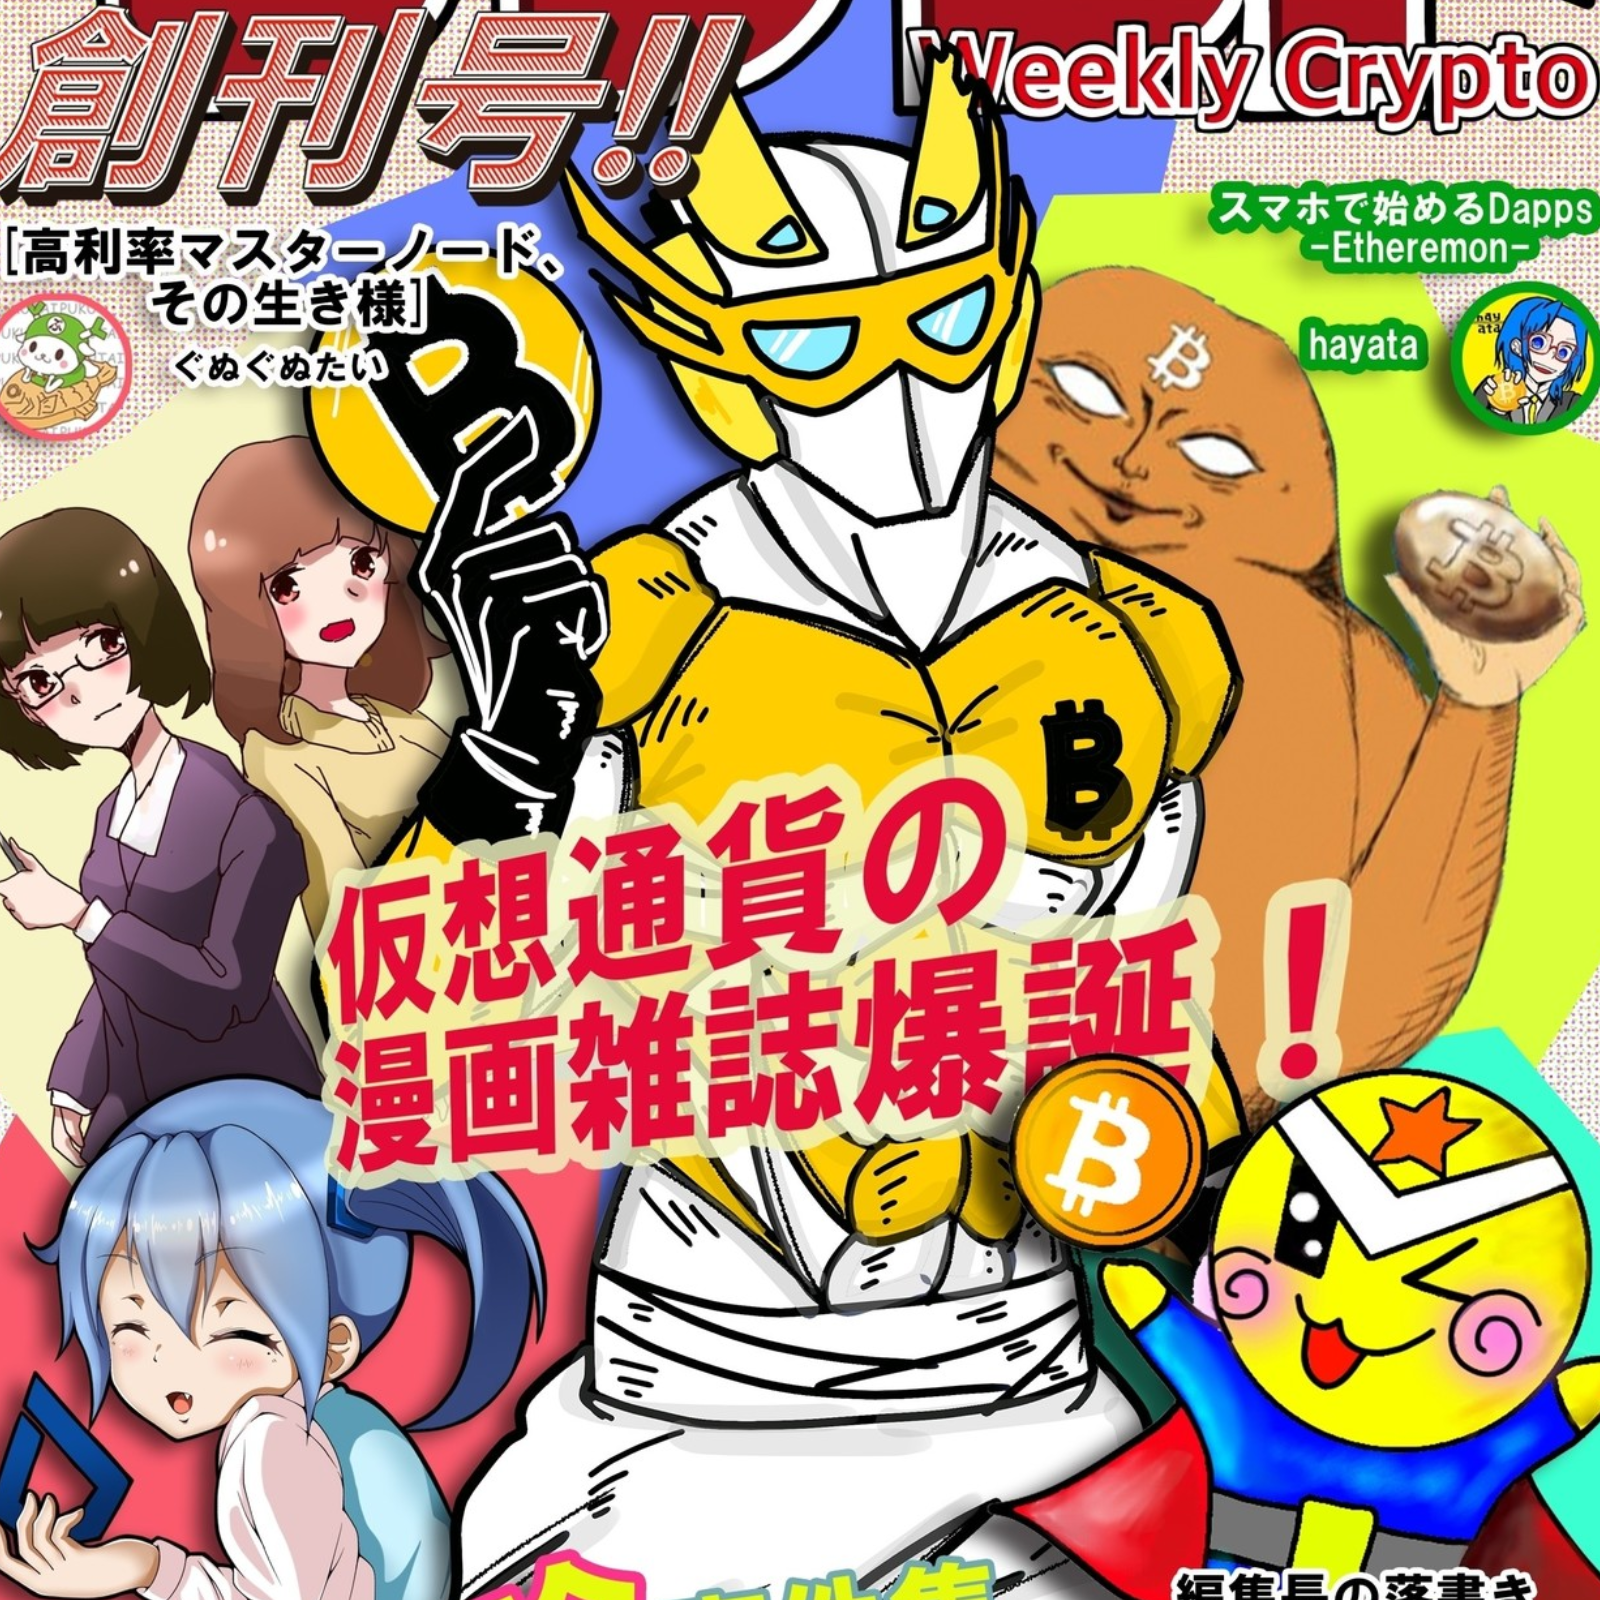 Crypto Manga - Comic Book Series to Spread Cryptocurrency Awareness